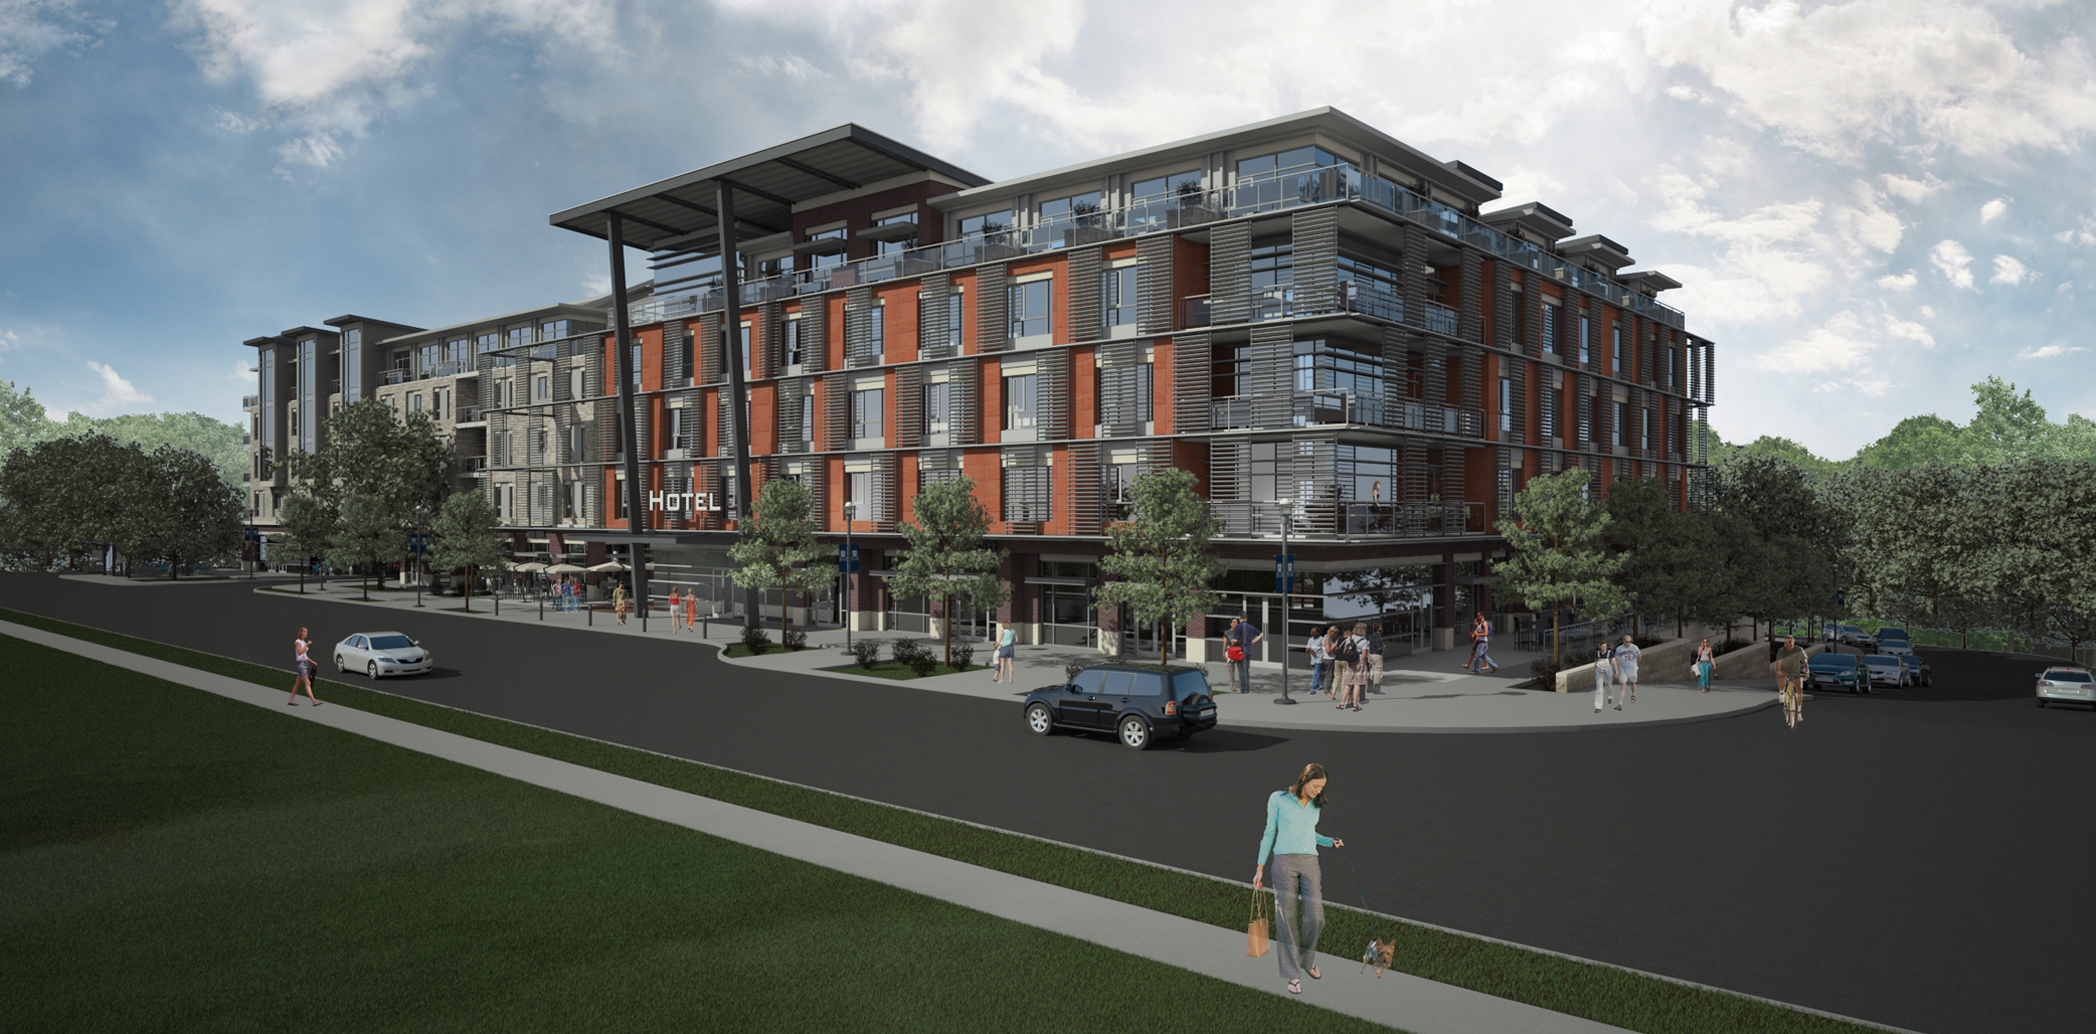 Butler University Mixed-Use Development (Conceptual Design)